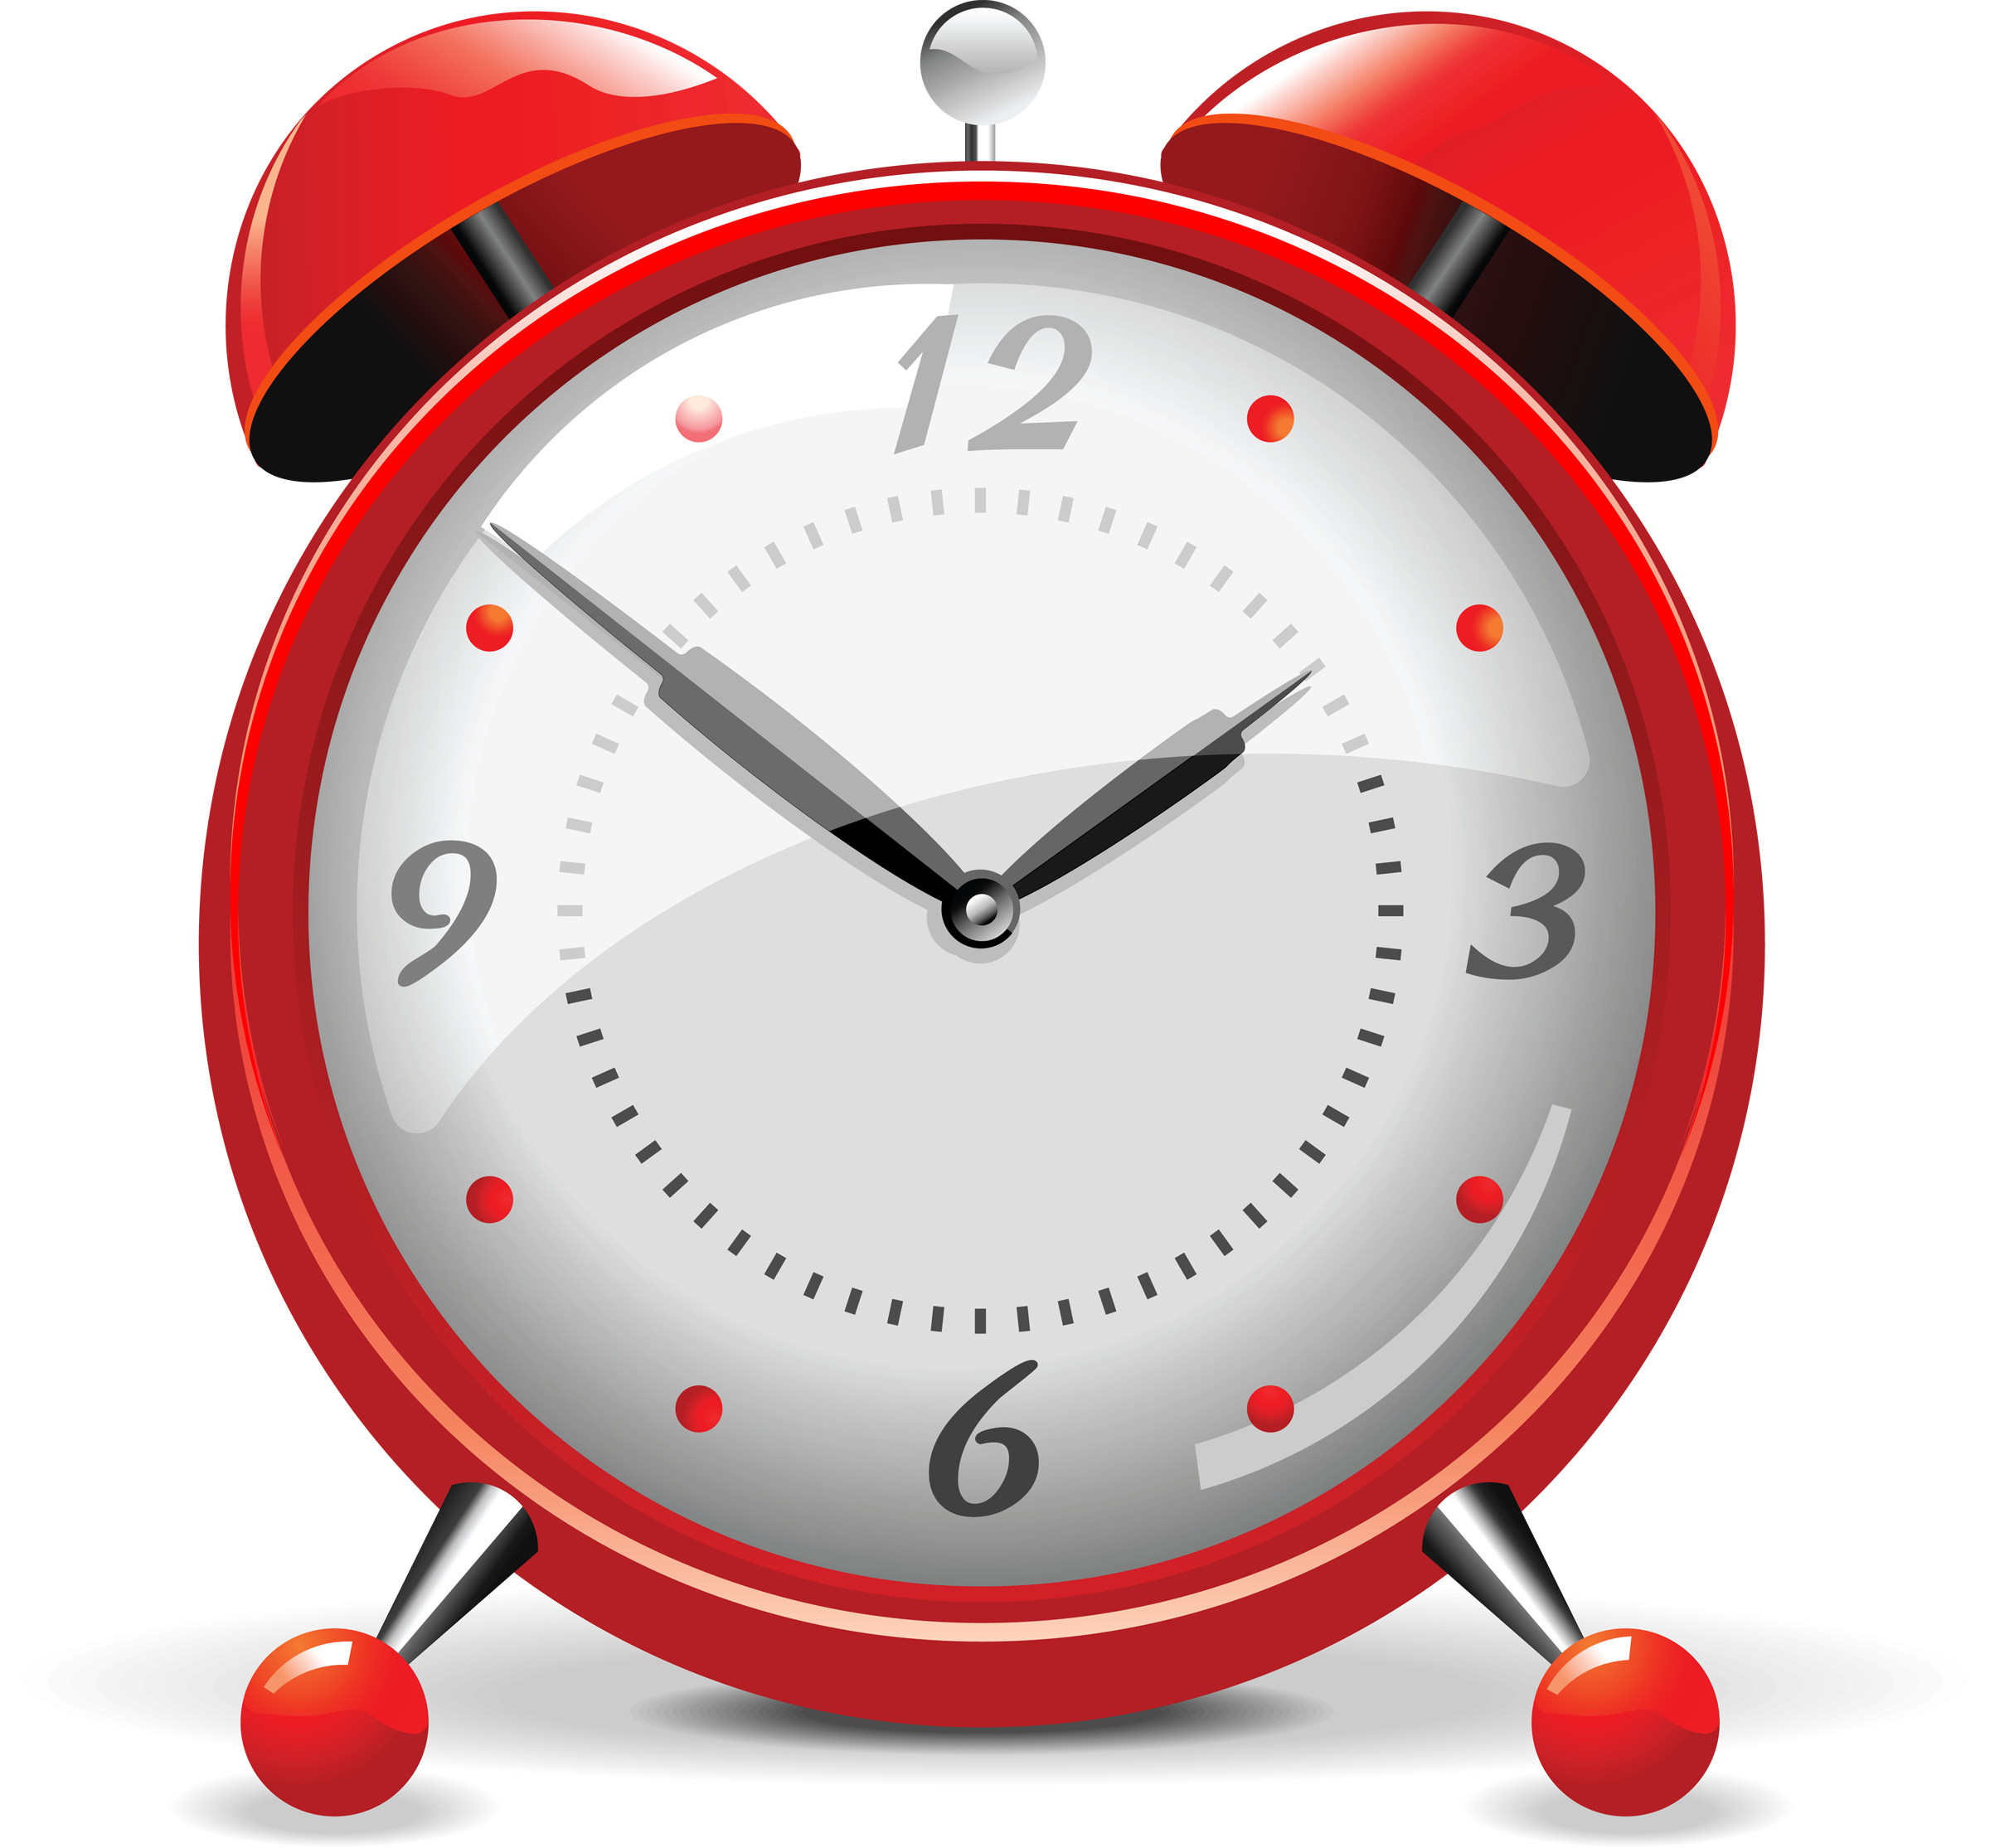 School clock clipart picture free stock Clock Clipart Transparent - 15141 - TransparentPNG picture free stock